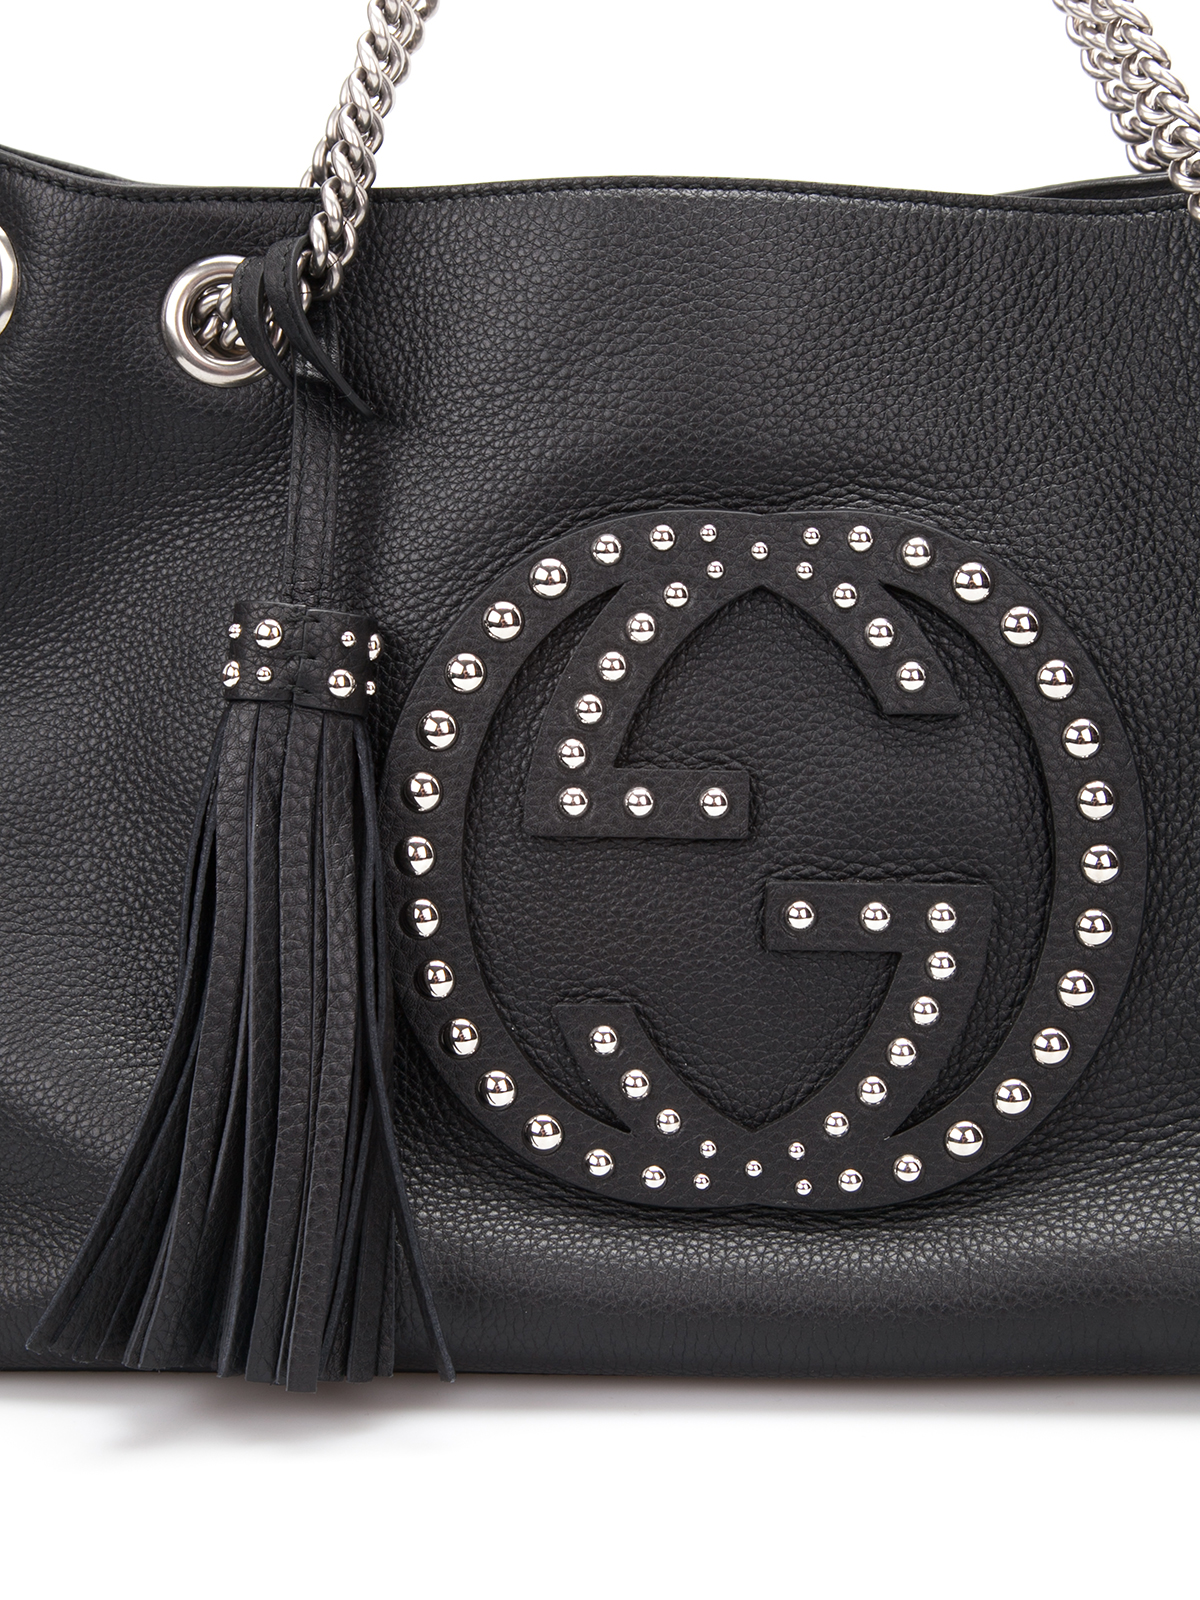 Gucci Soho Studded Leather Shoulder Bag Totes Bags